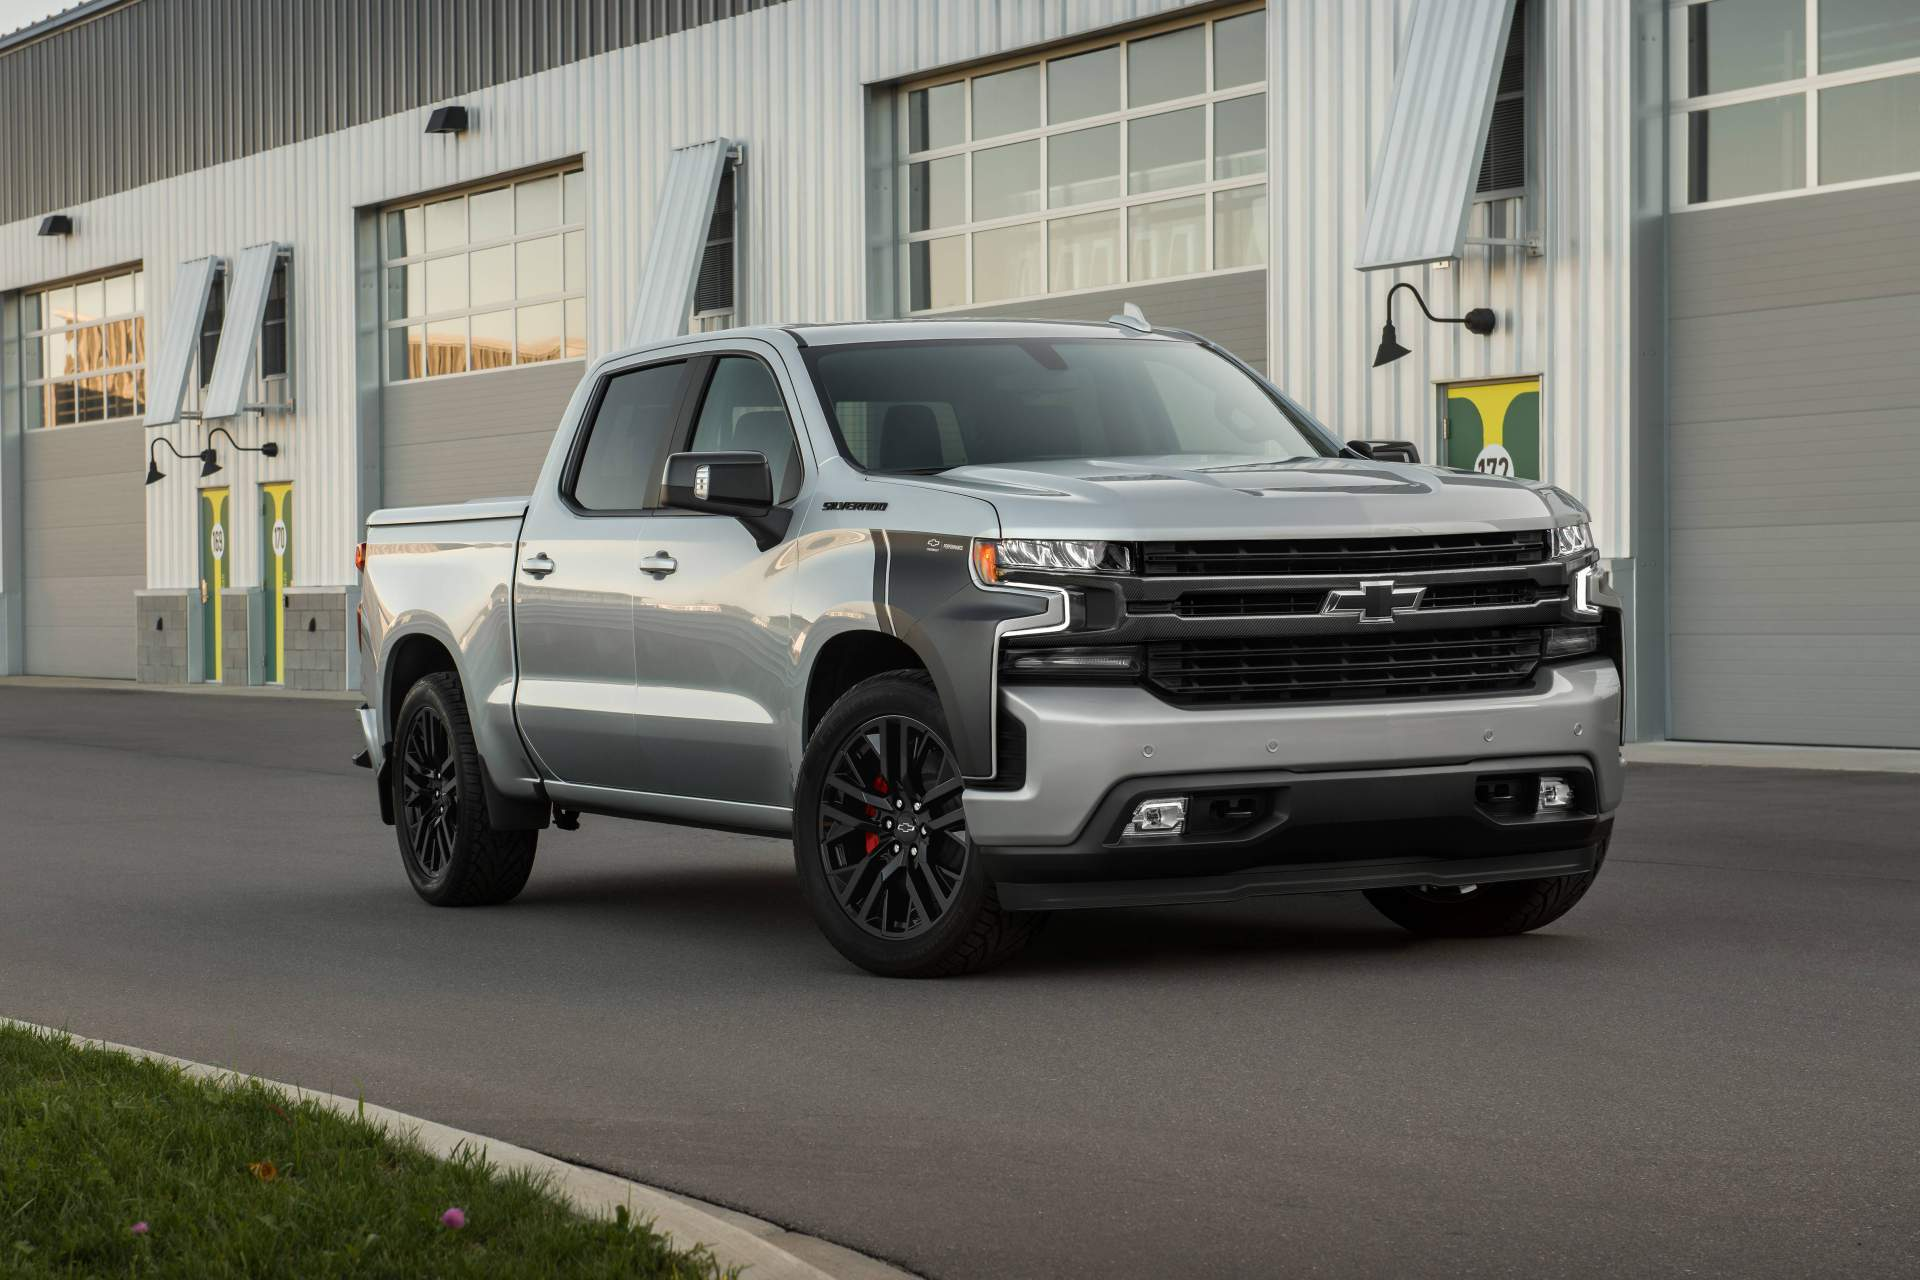 2019 Chevrolet Silverado Tripower Is Less Efficient Than ...